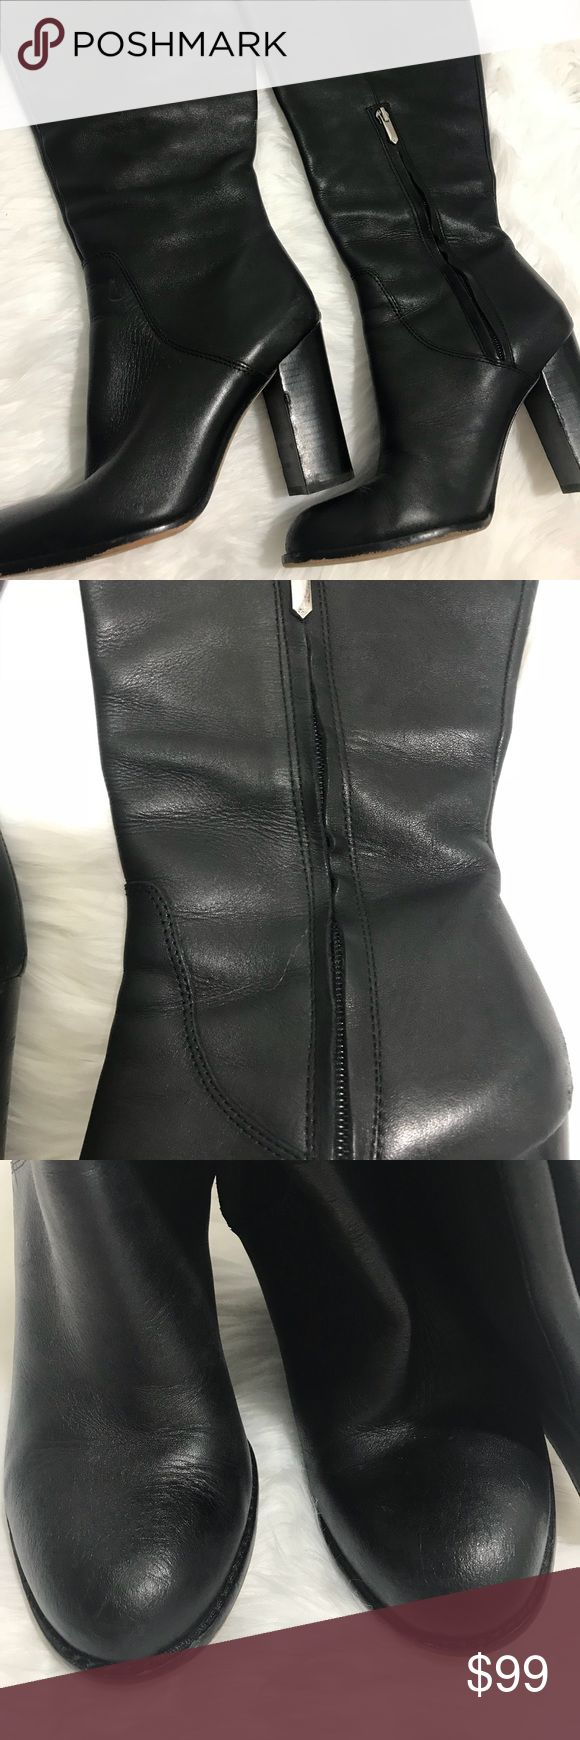 "Sam Edelman Regina2 wide calf boots 4.5 heel, leather, 8m size. Zipper ankle. Calf circumference 16"". Boot shaft 16.5"". Normal wear and tear . 1015 Sam Edelman Shoes Heeled Boots"